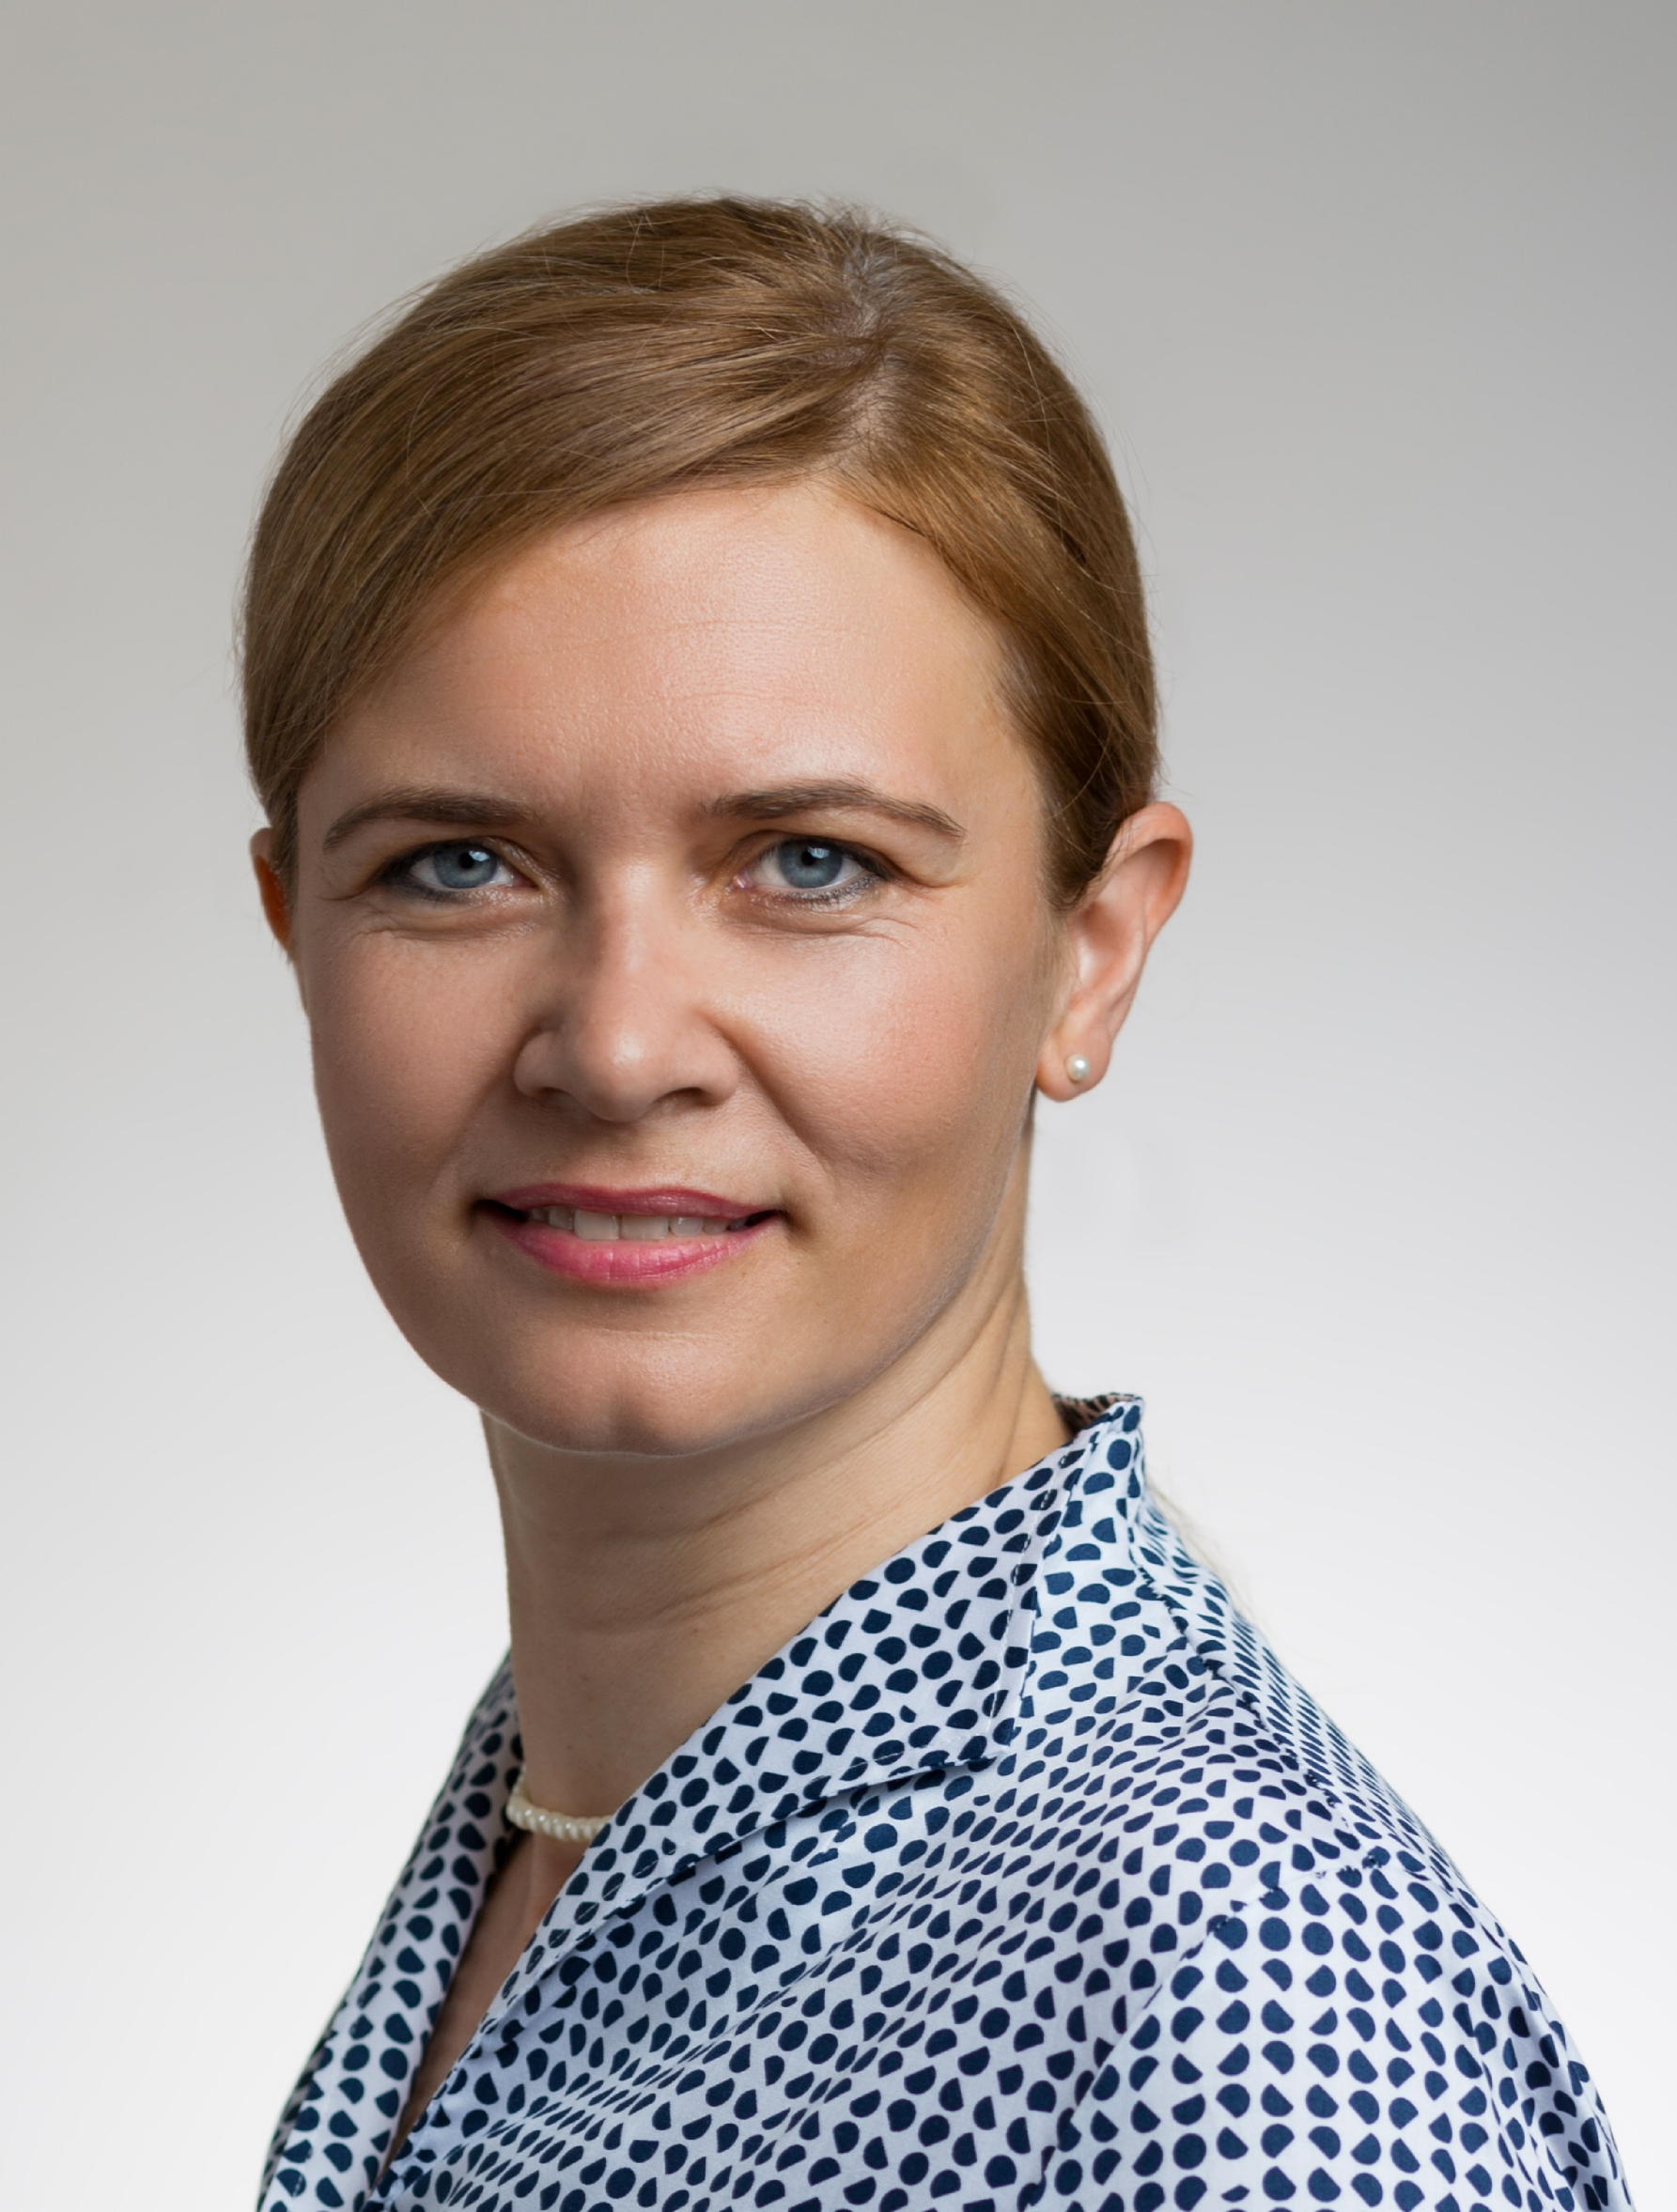 - Dr. Kámán joined BioBlocks, Kft. in April 2008 as a project leader. Since this time she has been in charge of developing screening leads into a novel, patentable series, capable of producing a drug candidate in a one to three year time frame. She is currently supervising a team of 18 chemists, responsible for project management, customer relations and communication. During her employment at BioBlocks, she supervised two PhD students, who were working on palladium-catalyzed chemistry. Between 2005 and 2008, Dr. Kámán worked at Ubichem (Soneas), where she was the leader of a four-member group involved in the planning, development and production of organic compounds on scales up to 100's of grams. Previously, Dr. Kámán spent 4 years in a post-doctoral position at Laboratory for Organic and Bio-organic Synthesis, Department of Organic Chemistry, University of Gent, Belgium. Two of these years were supported by the Marie Curie Fellowship. She was awarded a Ph.D. in Organic Chemistry from University of Szeged. Dr. Kámán is a co-author of 10 publications.